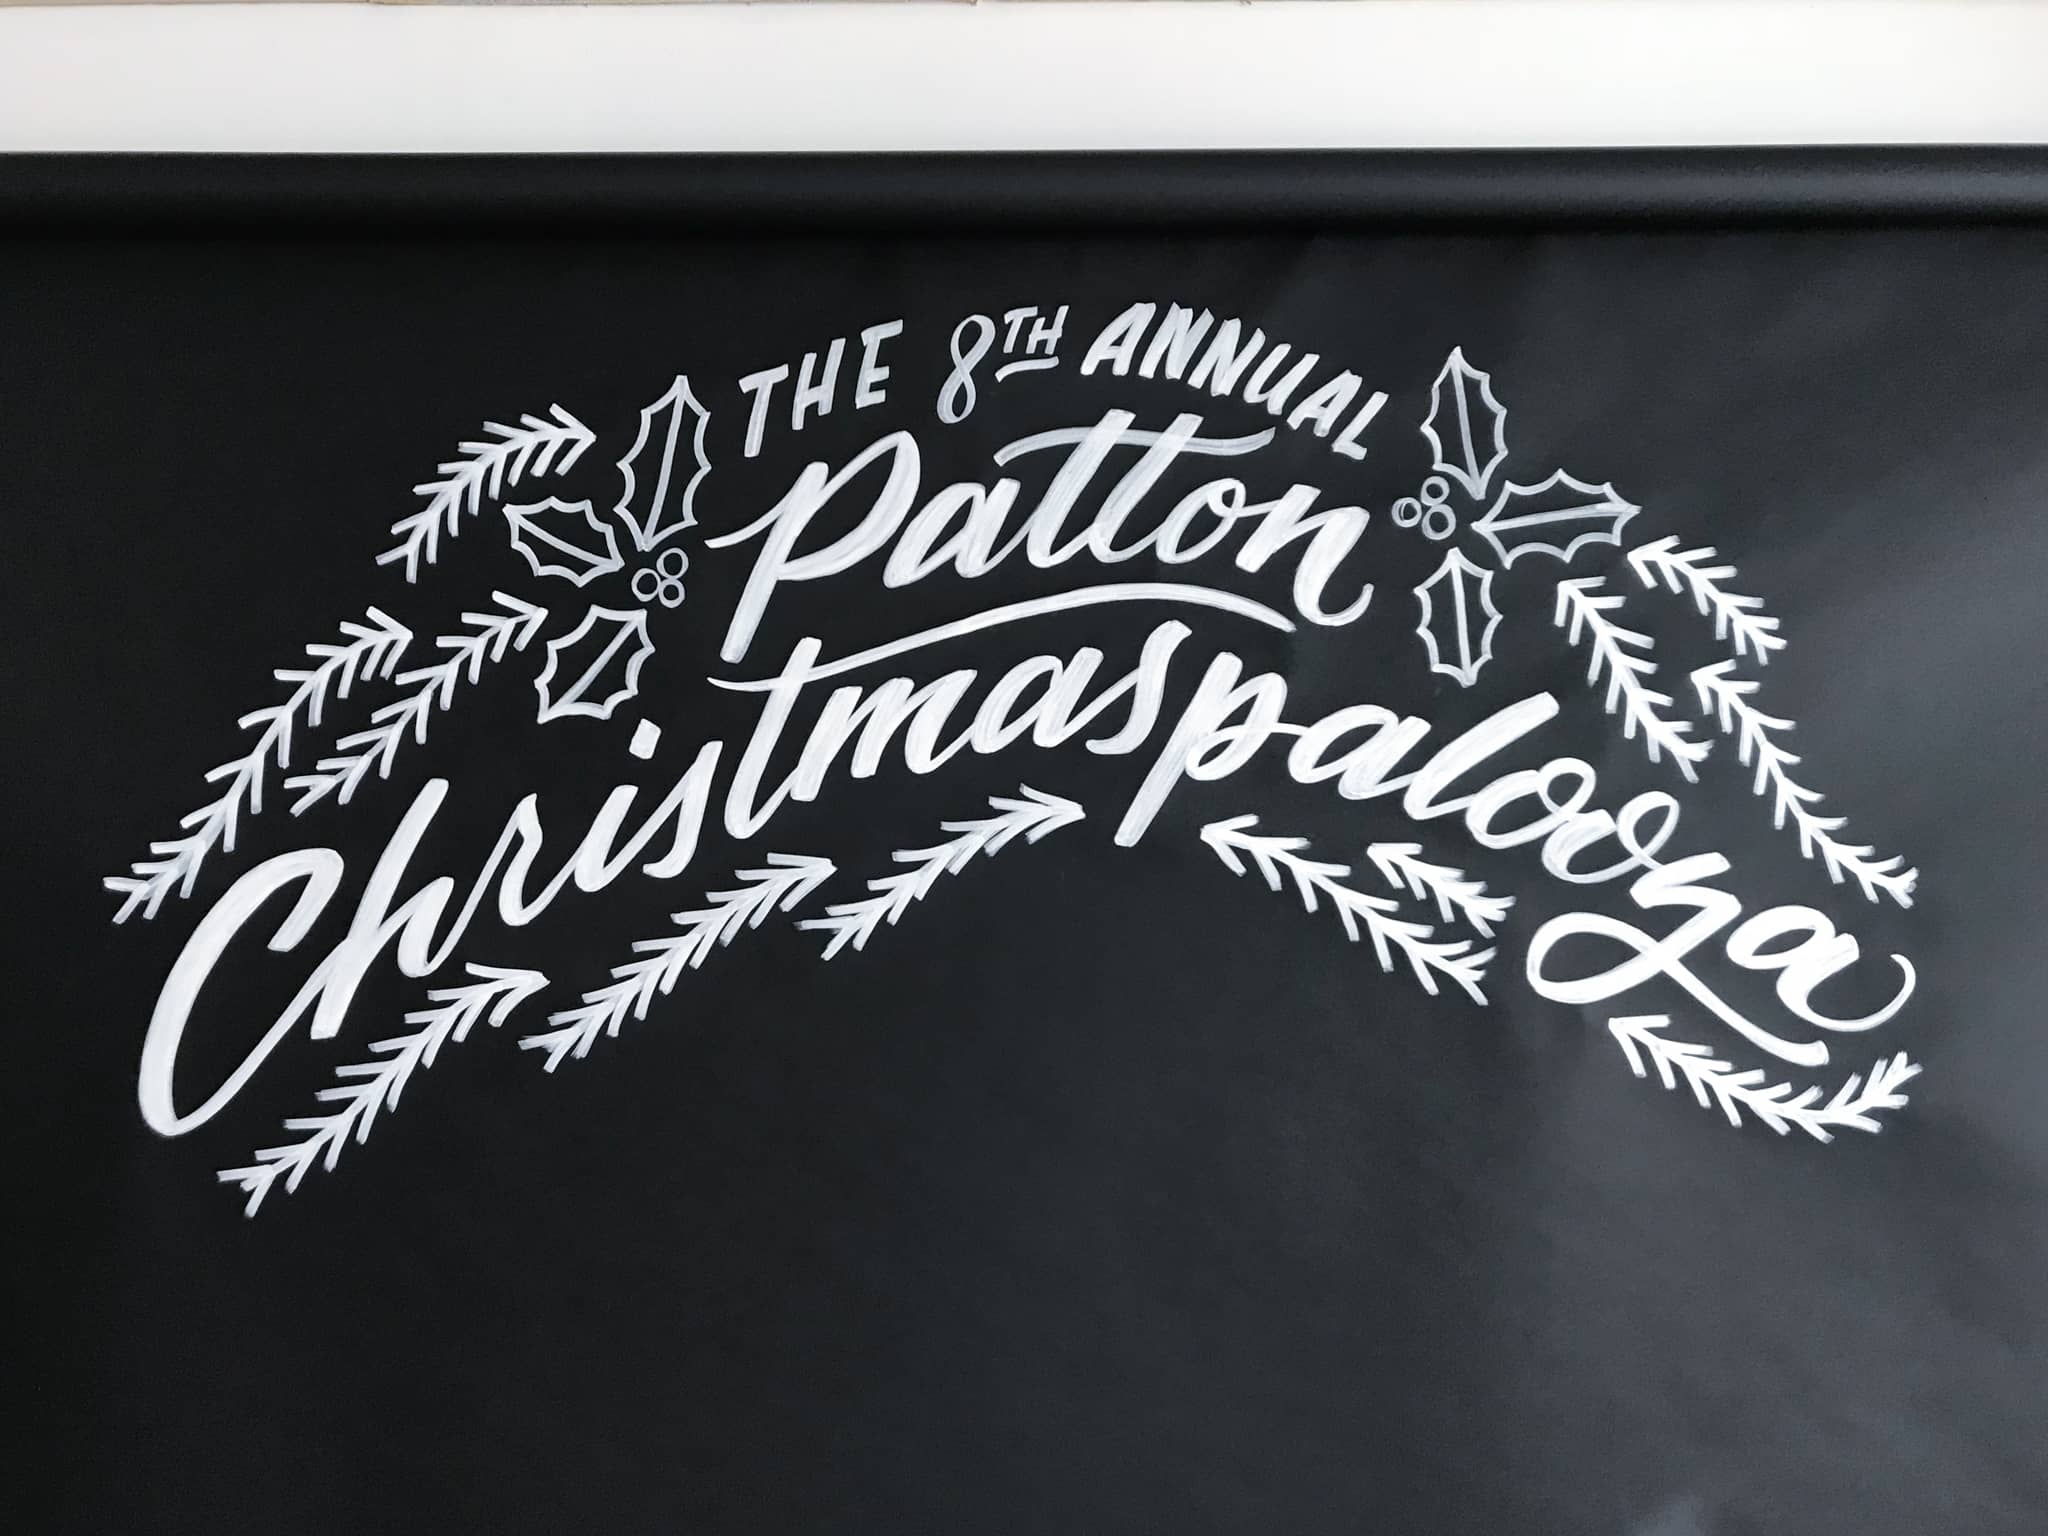 Hand painted holiday photo booth backdrop with brush lettering by Hillery Powers